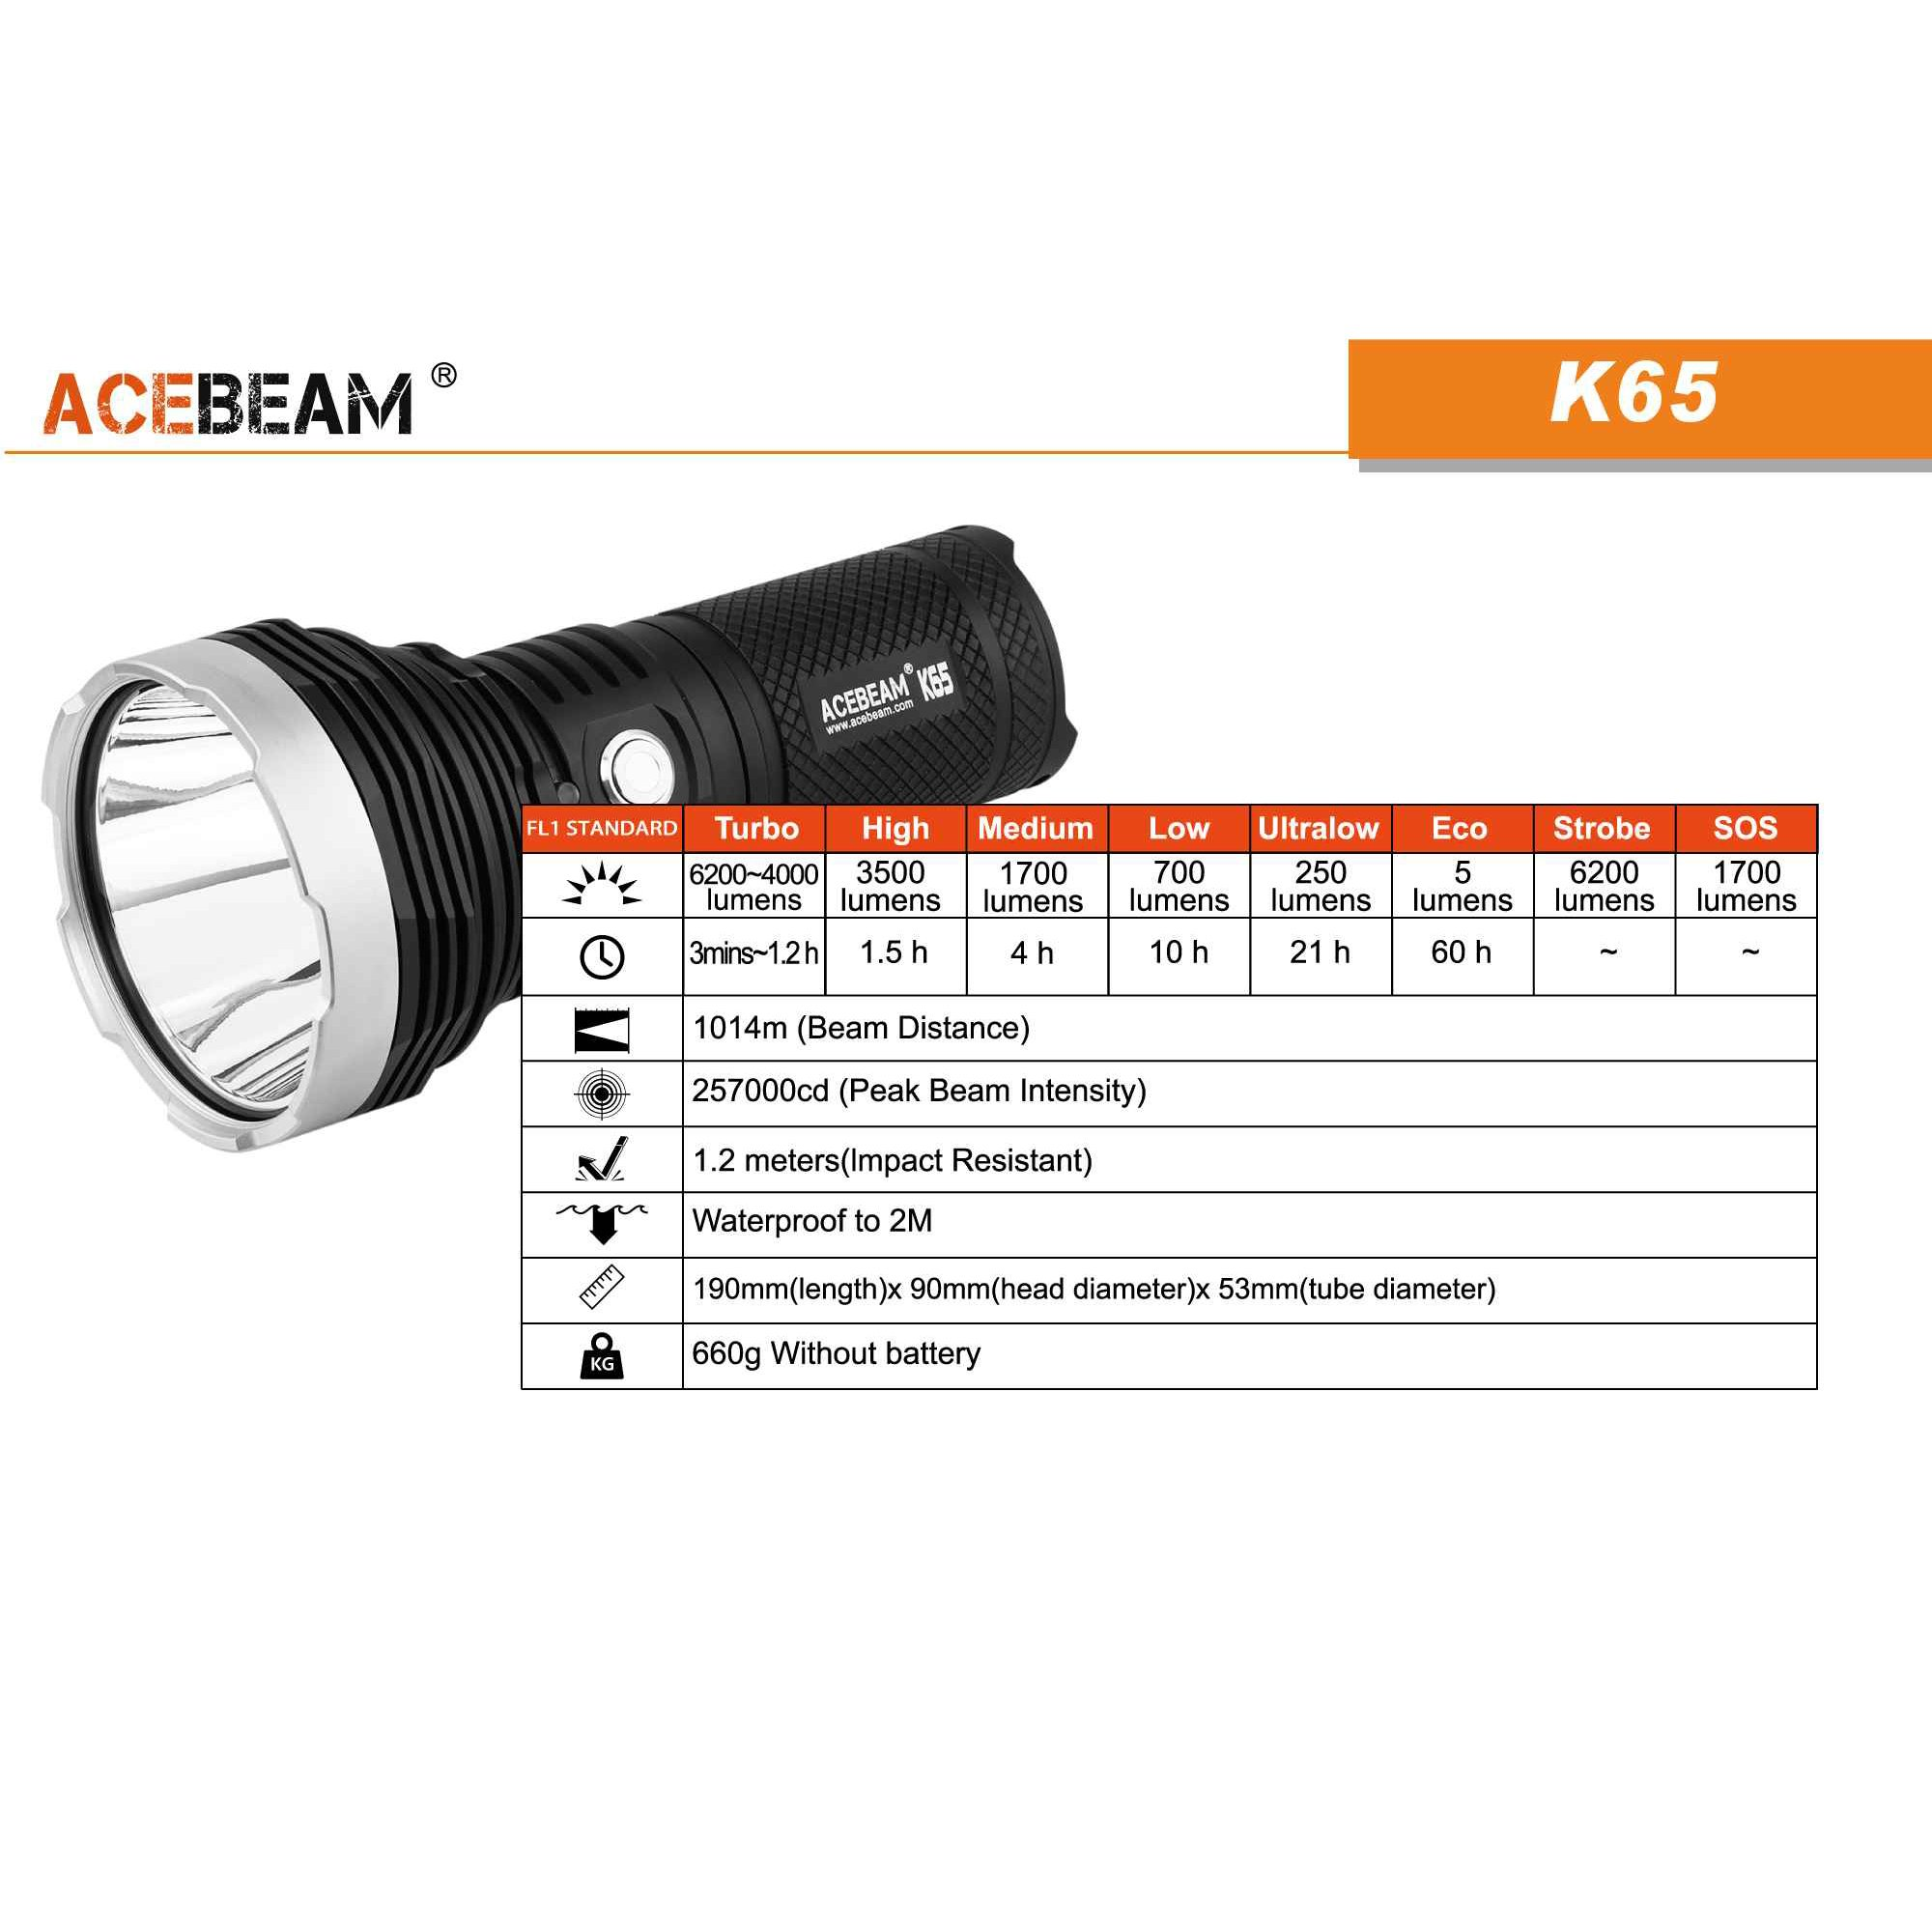 ACEBEAM K65 Flashlight CREE XHP70.2 De-Domed LED Searchlight with Max 6300 lumens Throw 1014M(6500K) by ACEBEAM (Image #3)